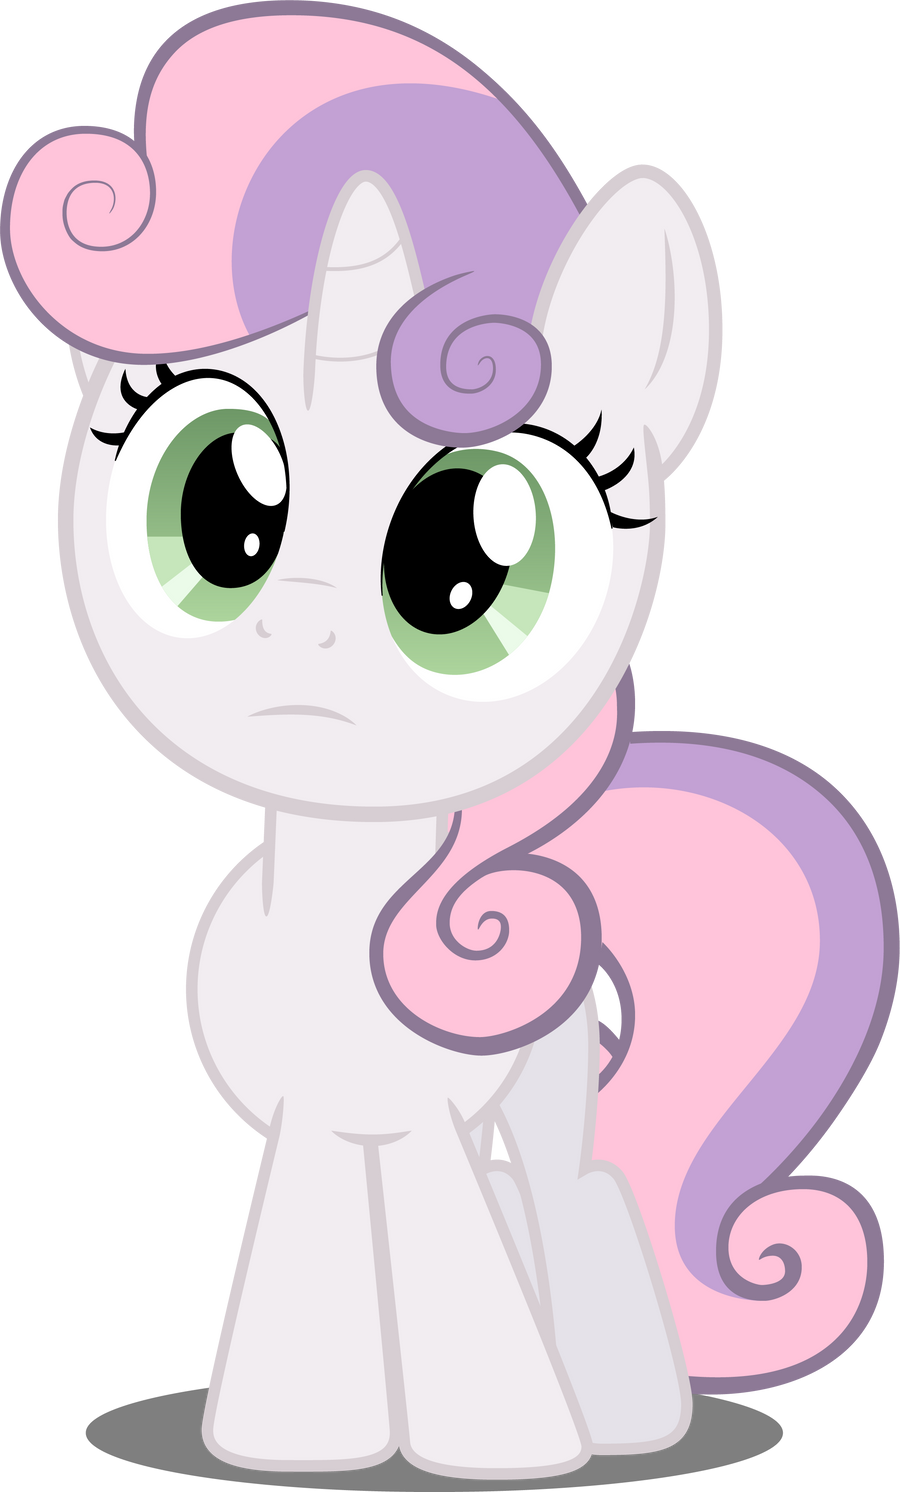 Sweetie Belle in perplexity by Felix-KoT